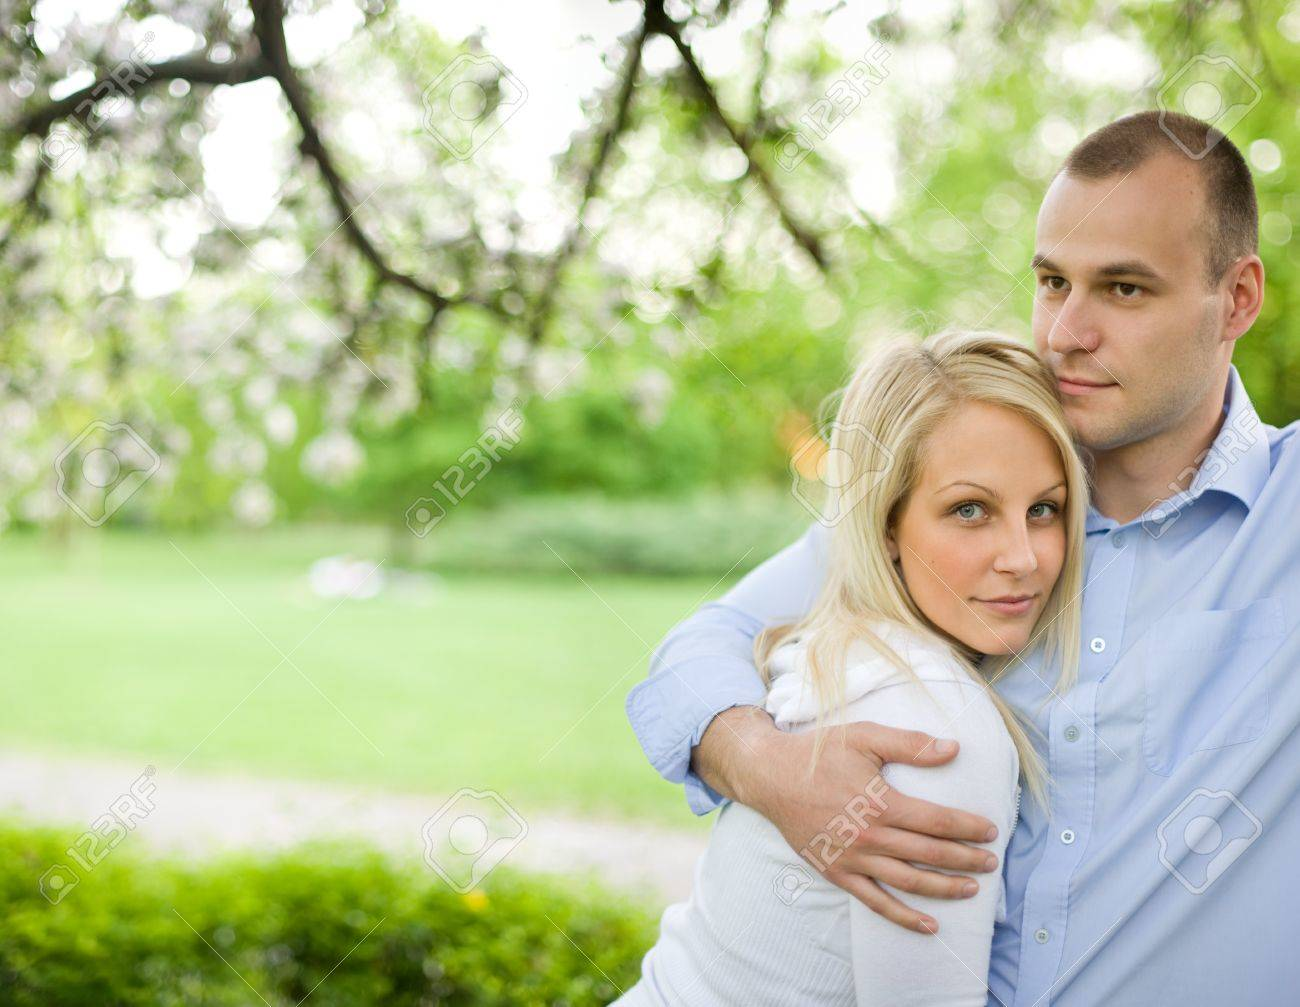 Romantic portrait of attractive young couple out doors in nature. Stock Photo - 9420246